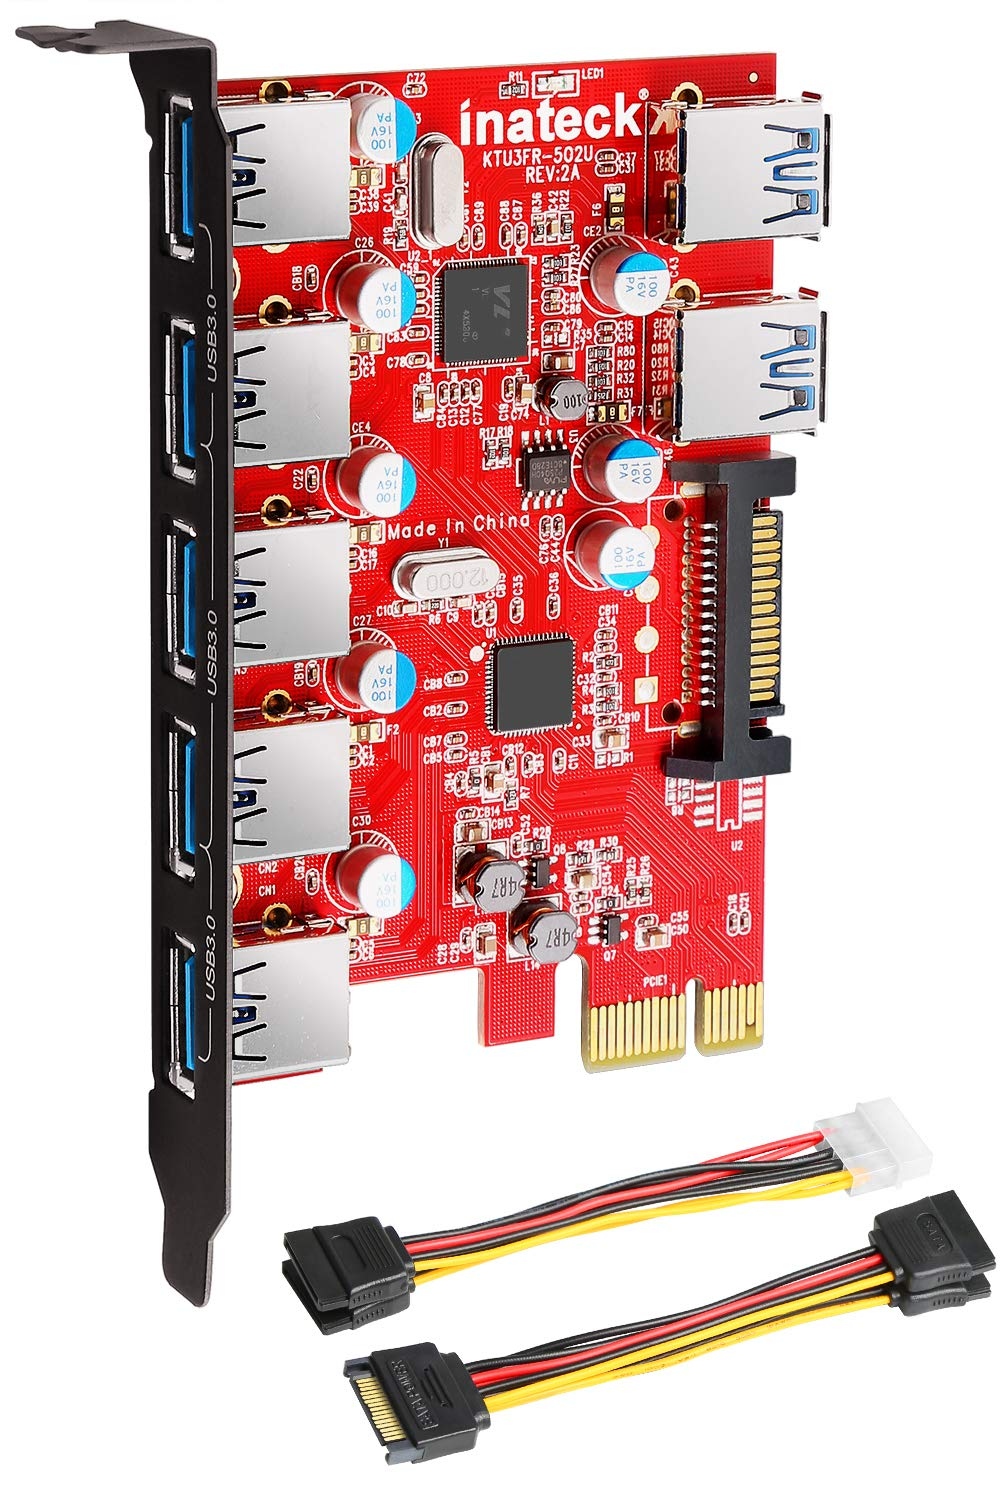 Inateck Superspeed 7 Ports PCI-E to USB 3.0 Expansion Card - 5 USB 3.0 Ports and 2 Rear USB 3.0 Ports Express Card Desktop with 15 Pin SATA Power Connector, Including Two Power Cables (KT5002) by Inateck